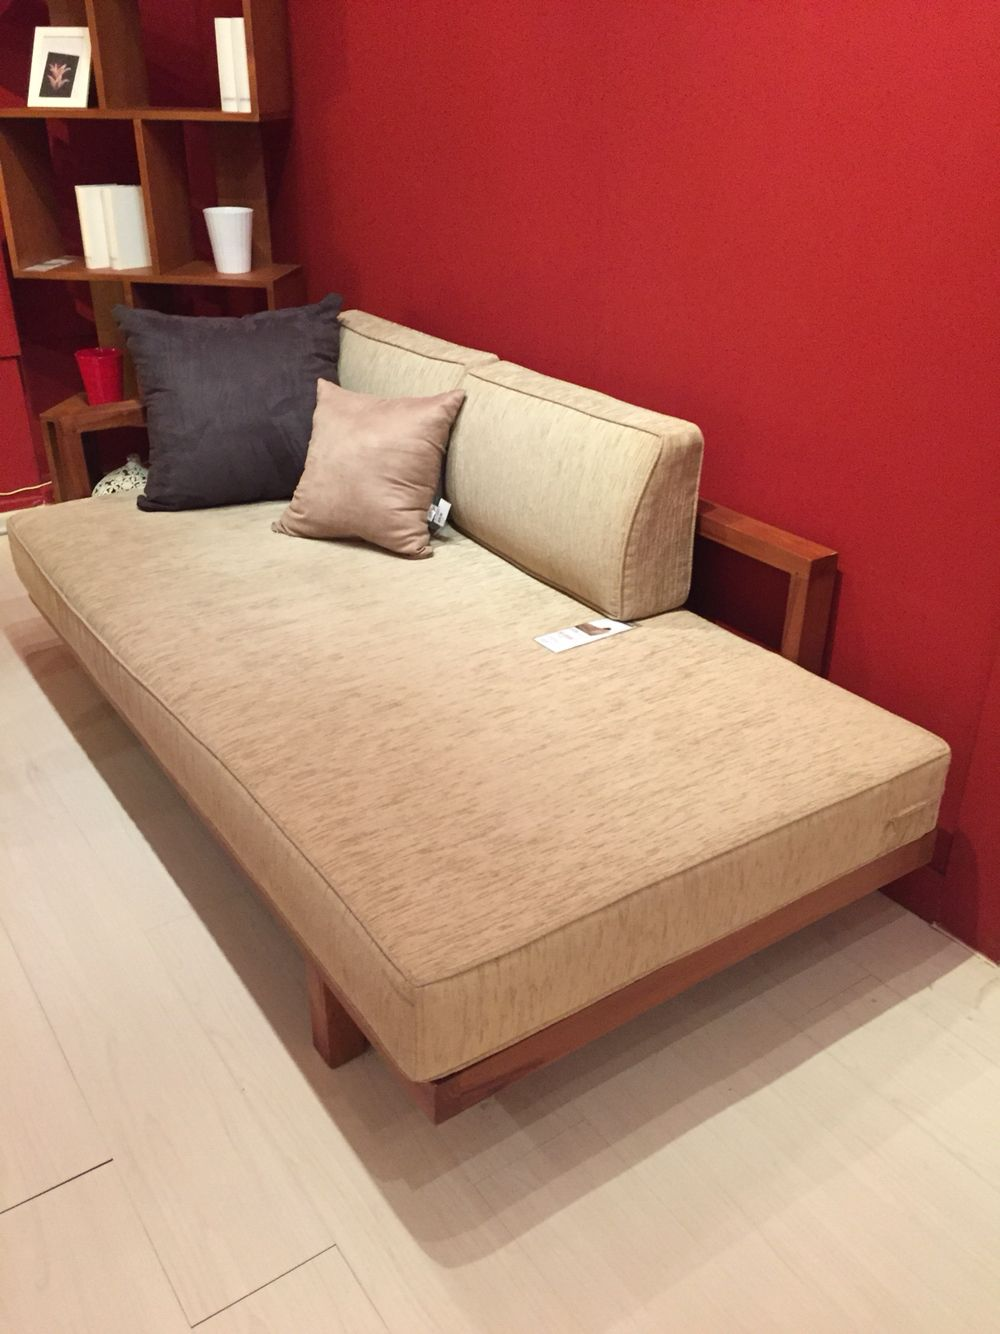 Scanteak Sofa Bed Home Ideas Pinterest Small Apartment Samdi Headset Wooden Stand Holder Rak Headphone Or Gantungan Decorating Daybed Apartments Sleeper